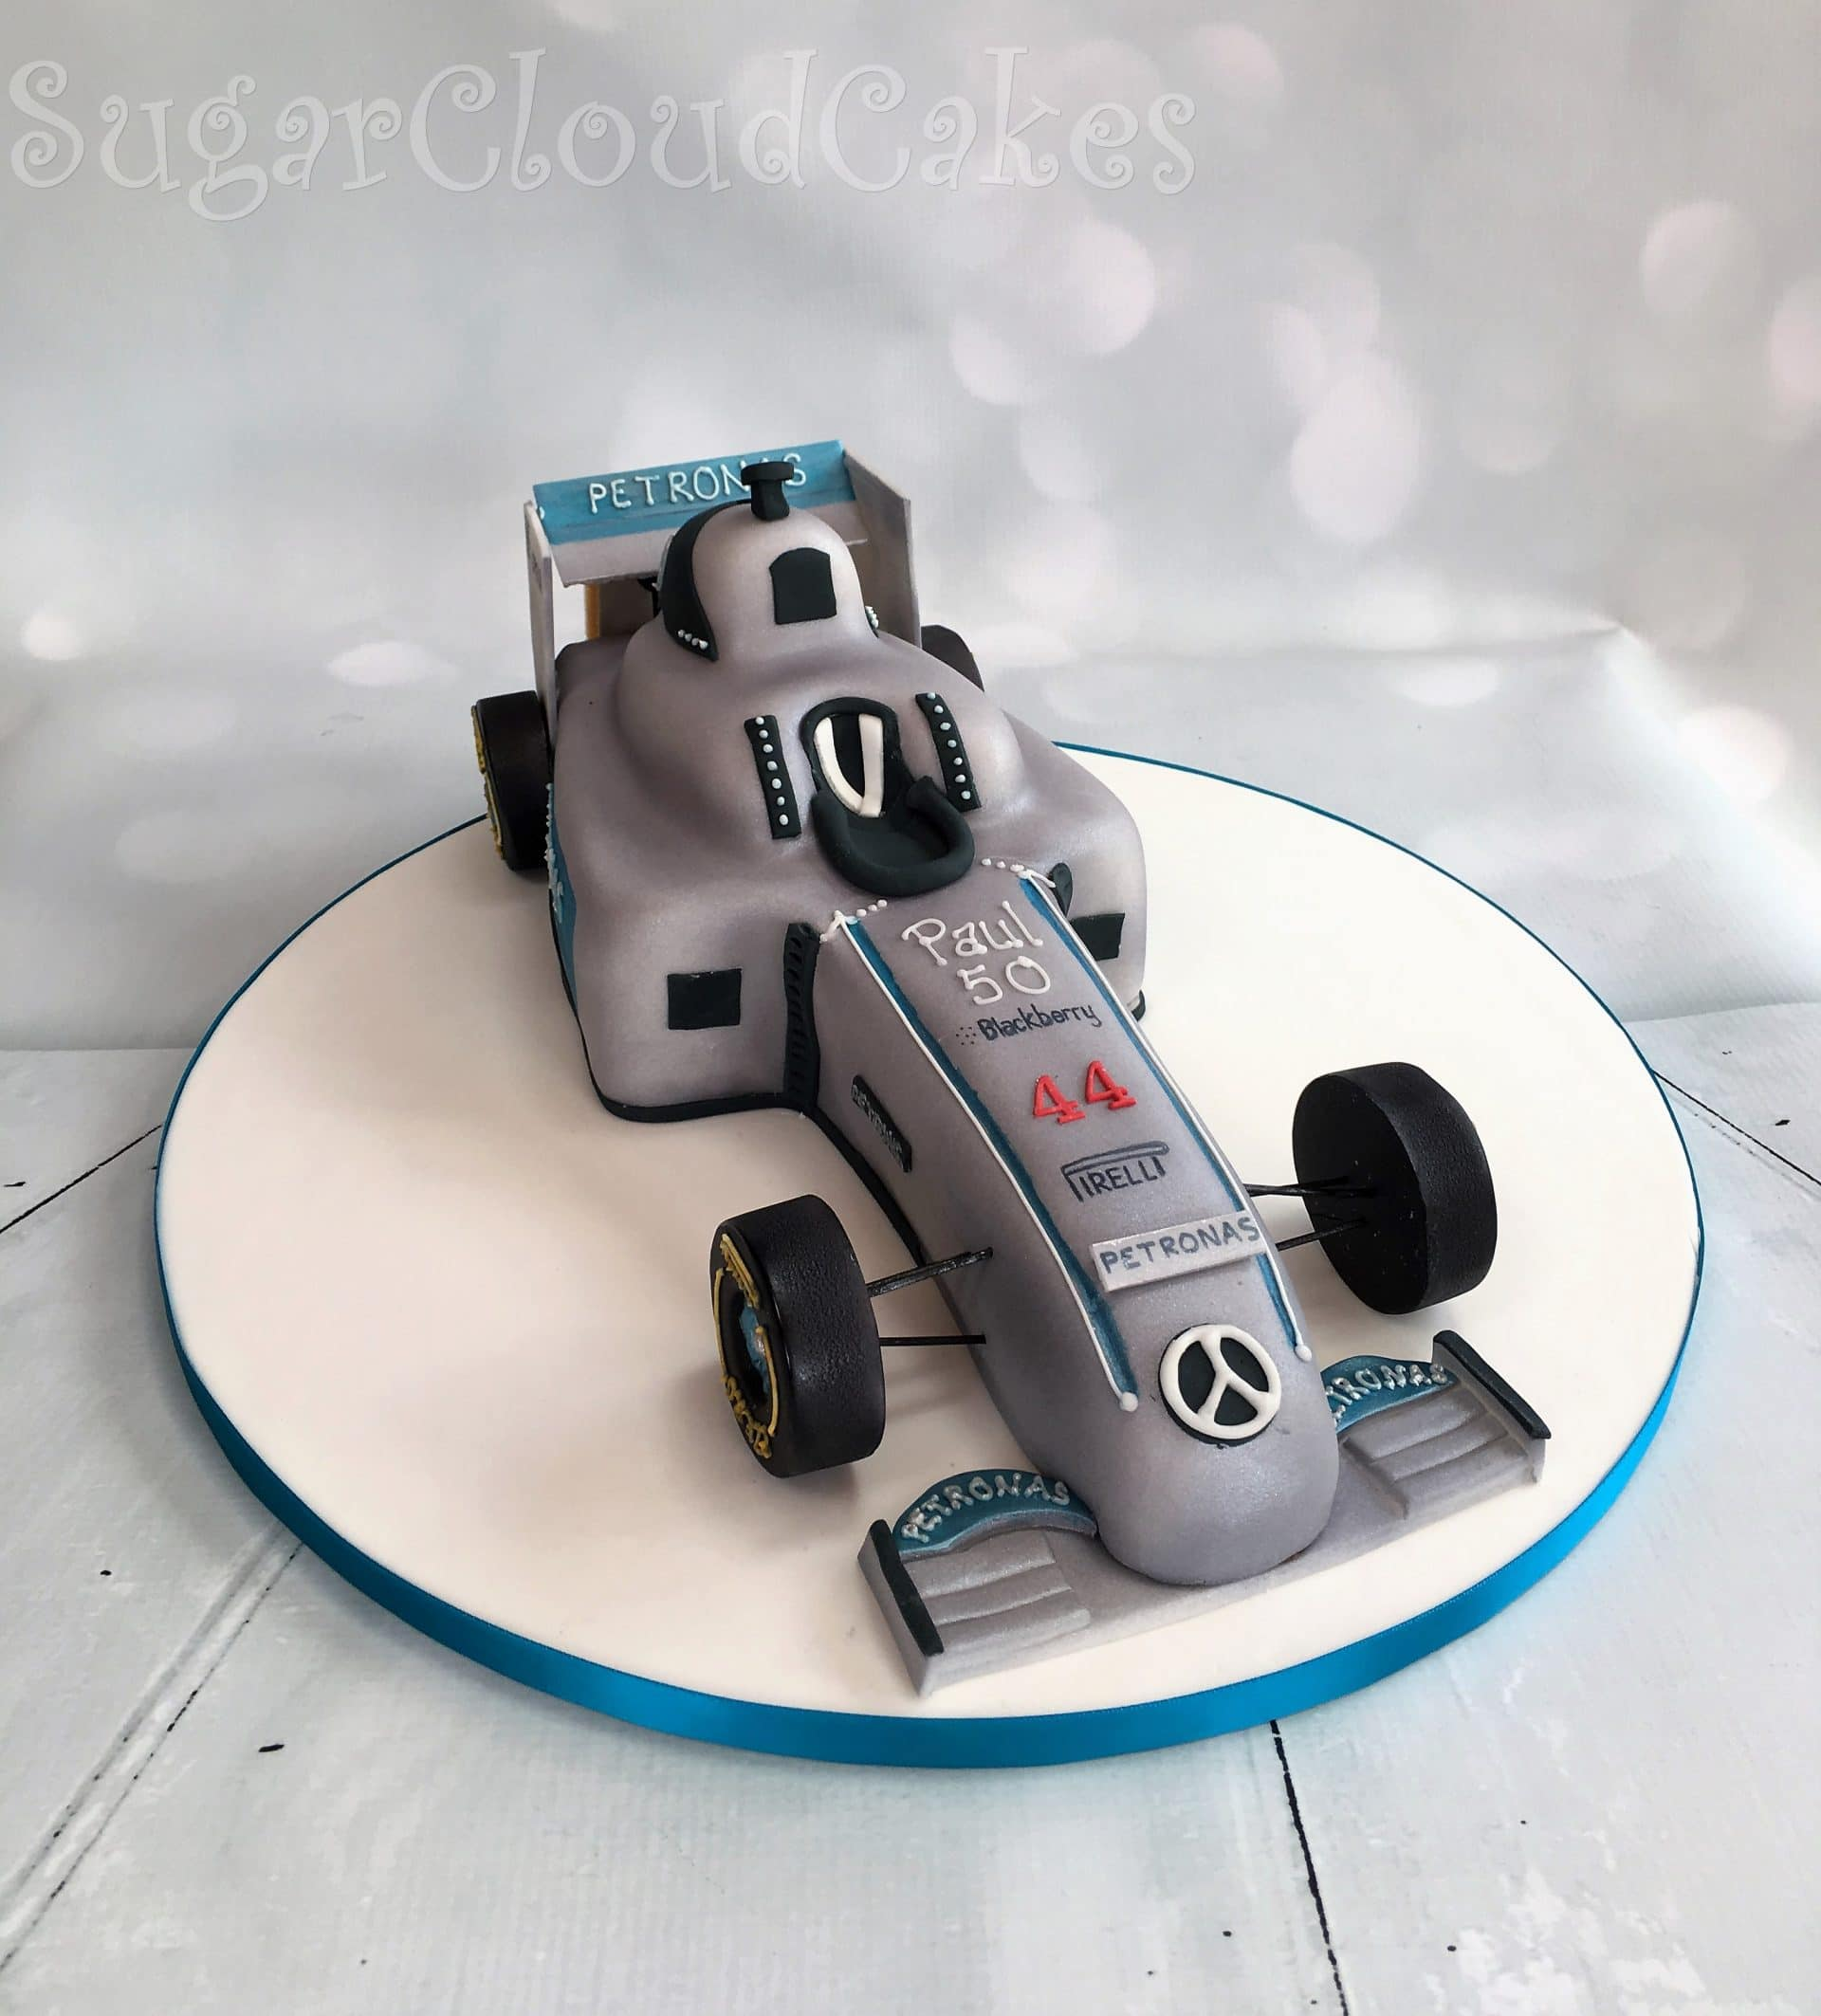 Lewis Hamilton F1 race car 50th birthday cake, Sandbach